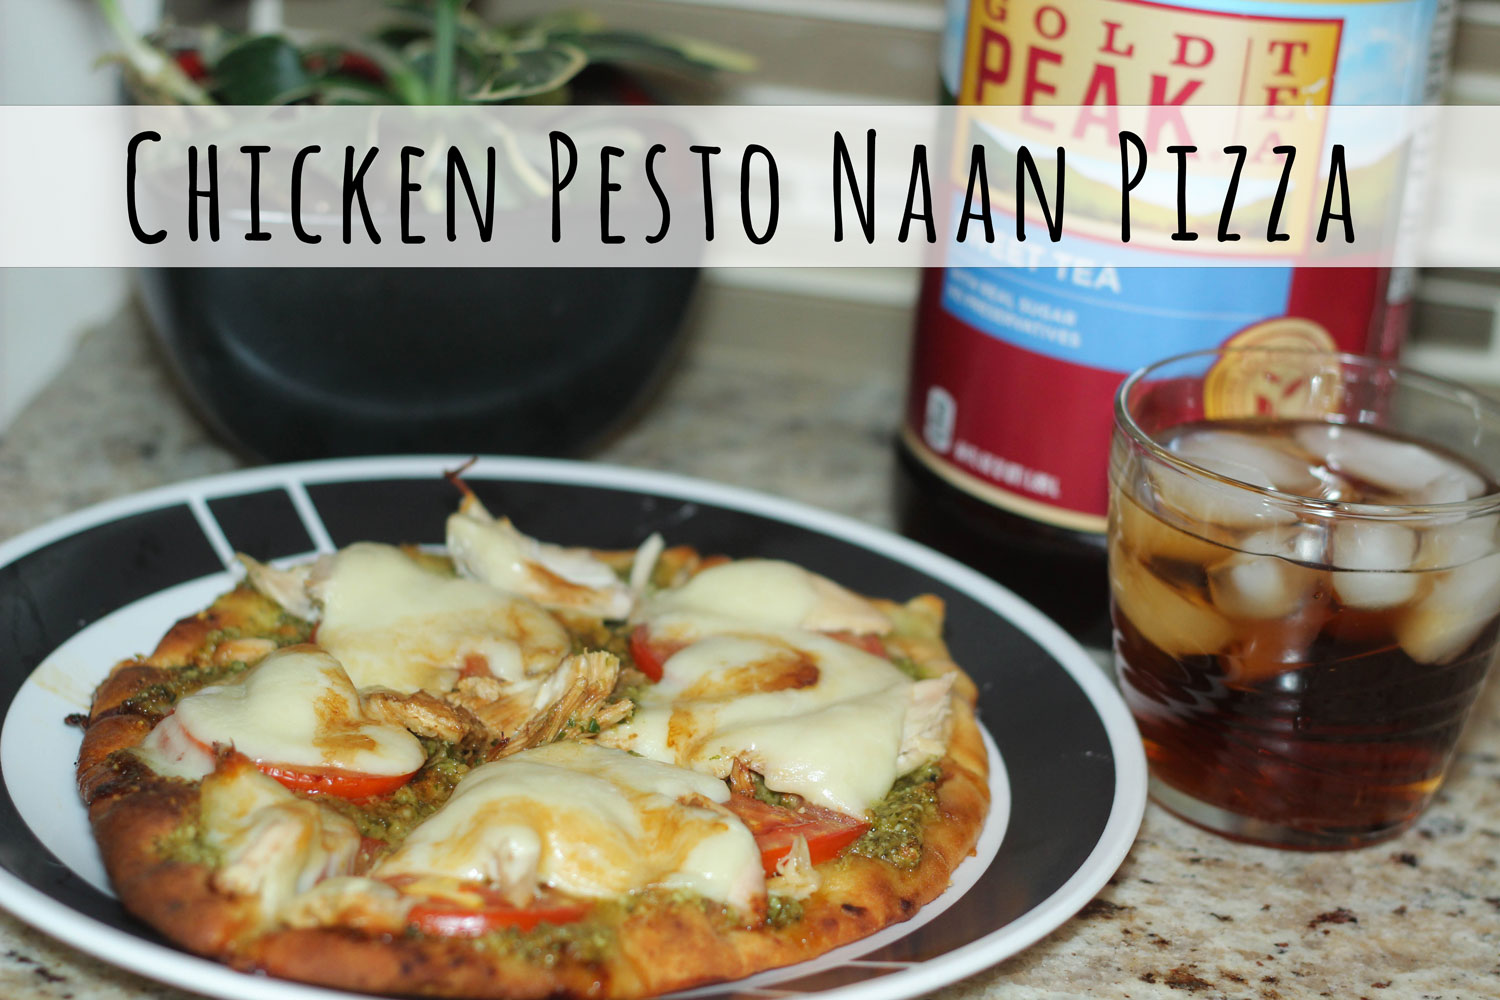 Chicken Pesto Naan Pizza with Jewel Osco Meal Deals | Bottles and Banter